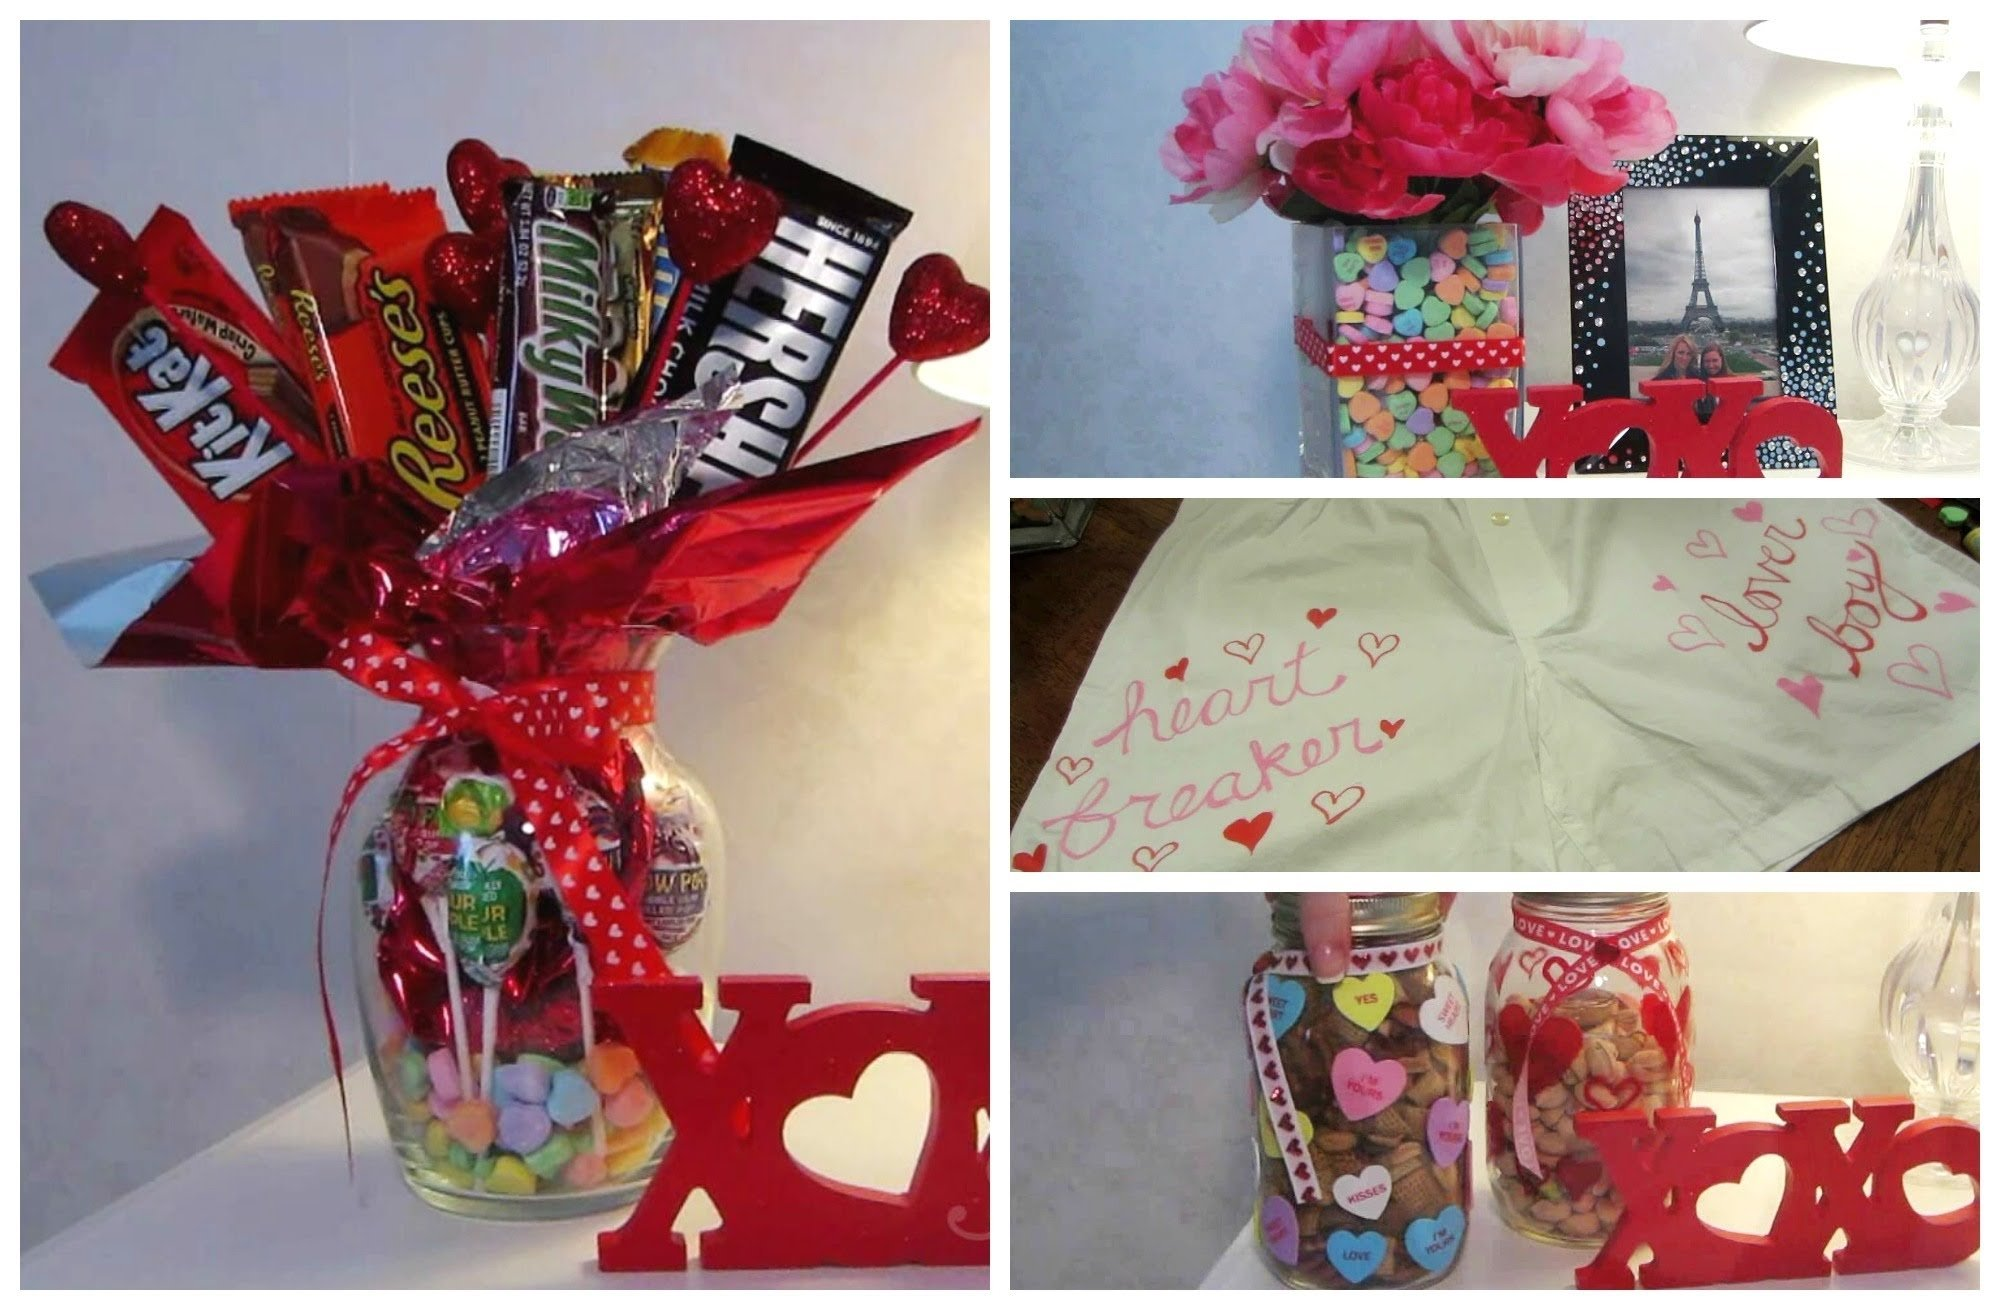 10 Spectacular Valentine Date Ideas For Her cute valentine diy gift ideas youtube 16 2021